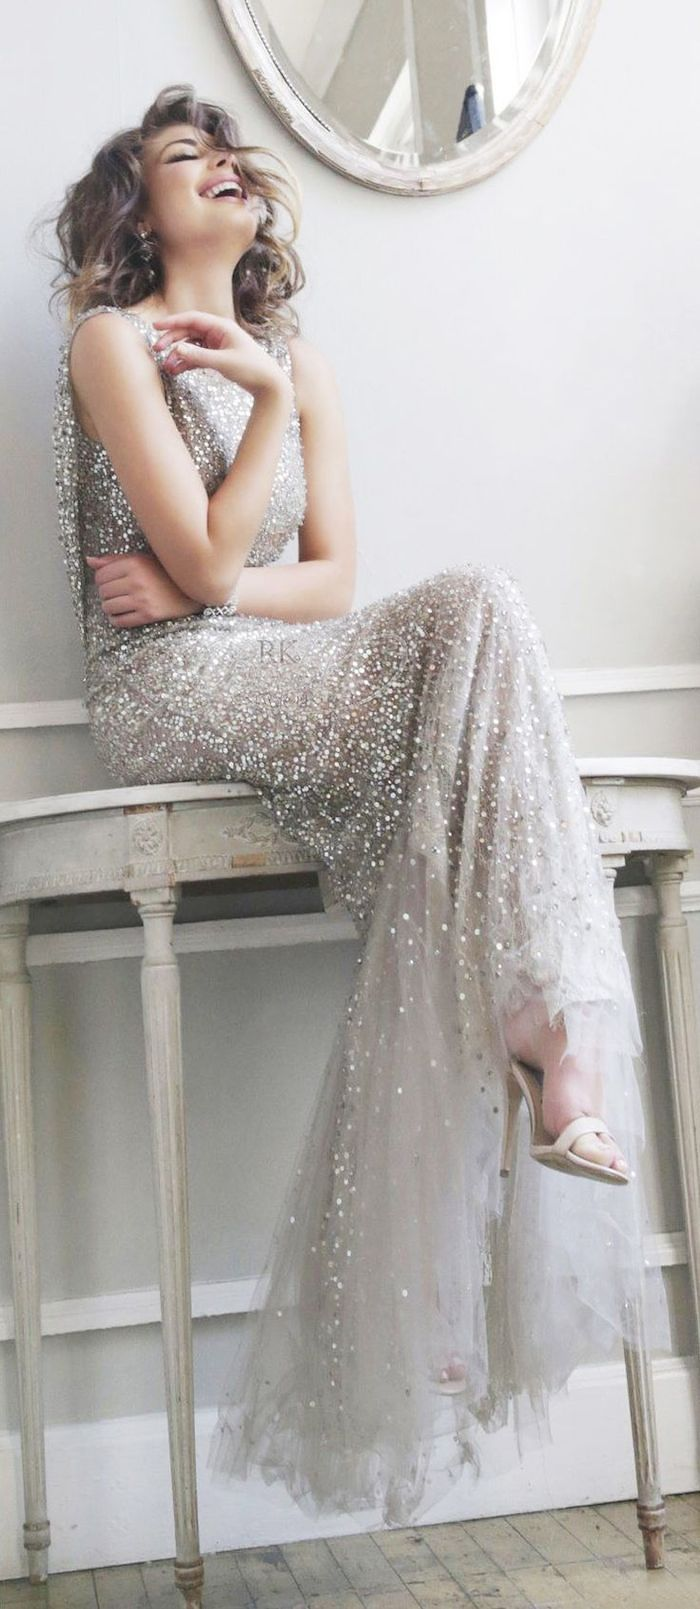 Gorgeous dress. How I long to feel, if only for a few minutes. Yes, I would take just a glimmer moment of feeling alive.